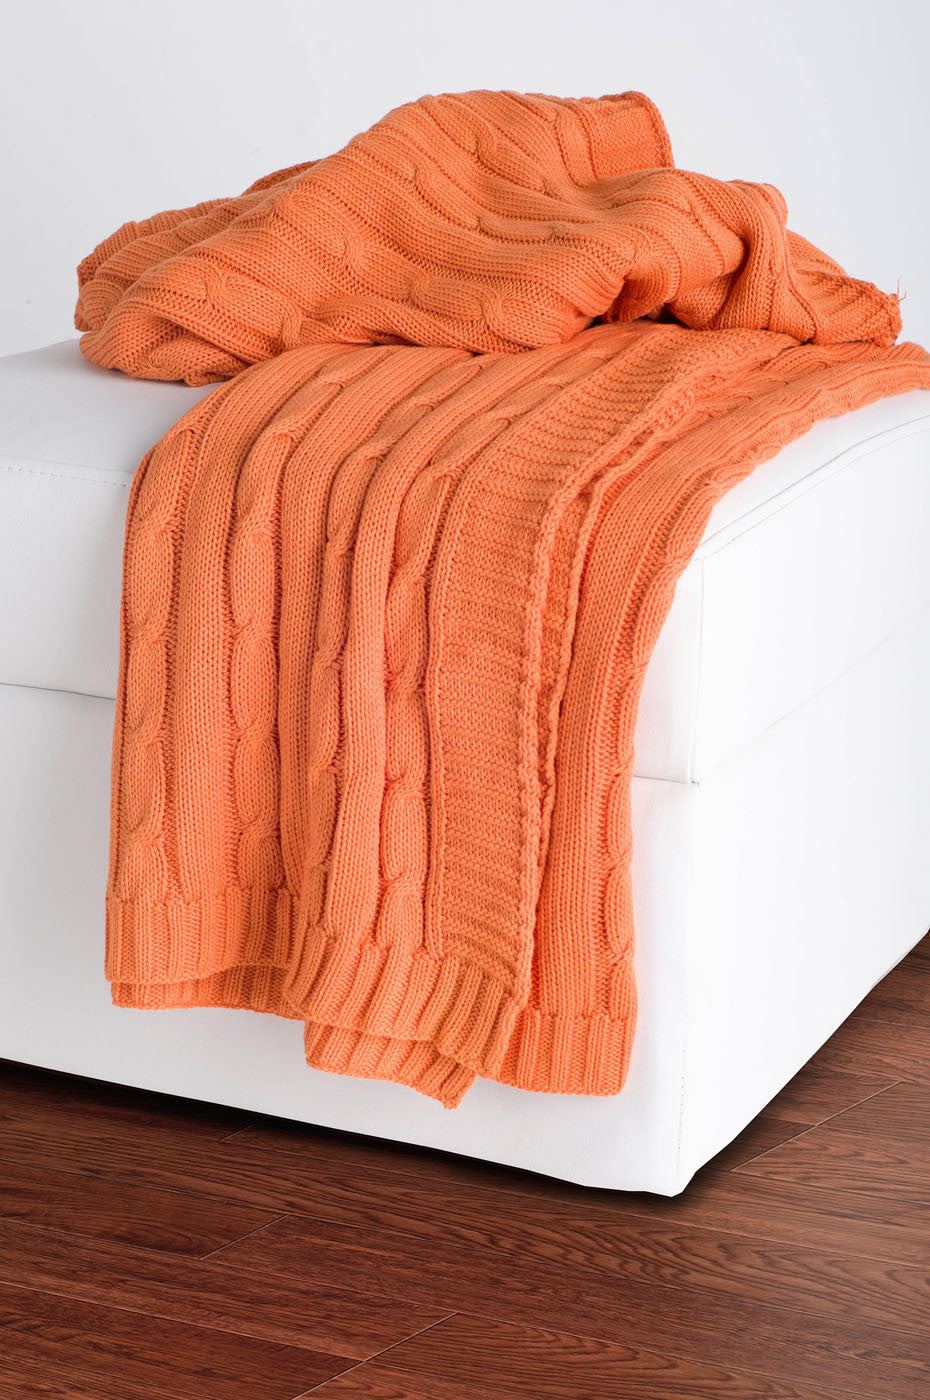 Rizzy Orange Throw TH0160